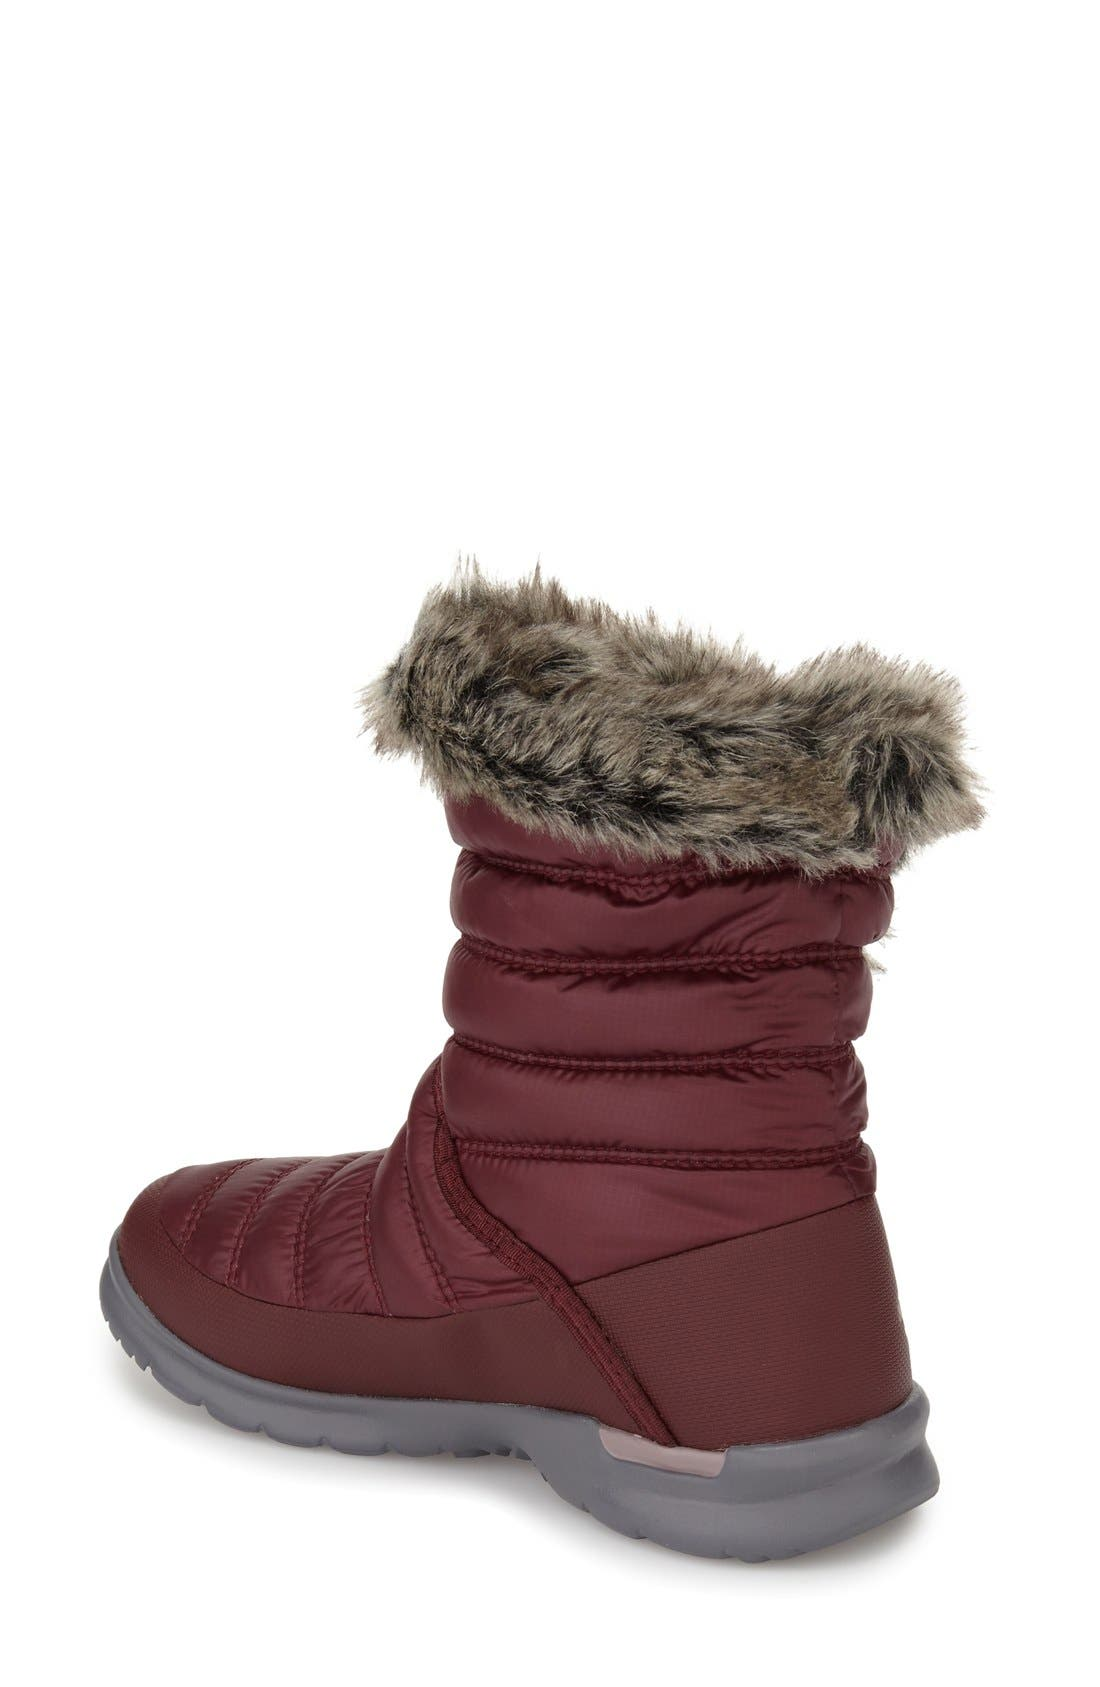 Alternate Image 2  - The North Face Microbaffle Waterproof ThermoBall® Insulated Winter Boot (Women)